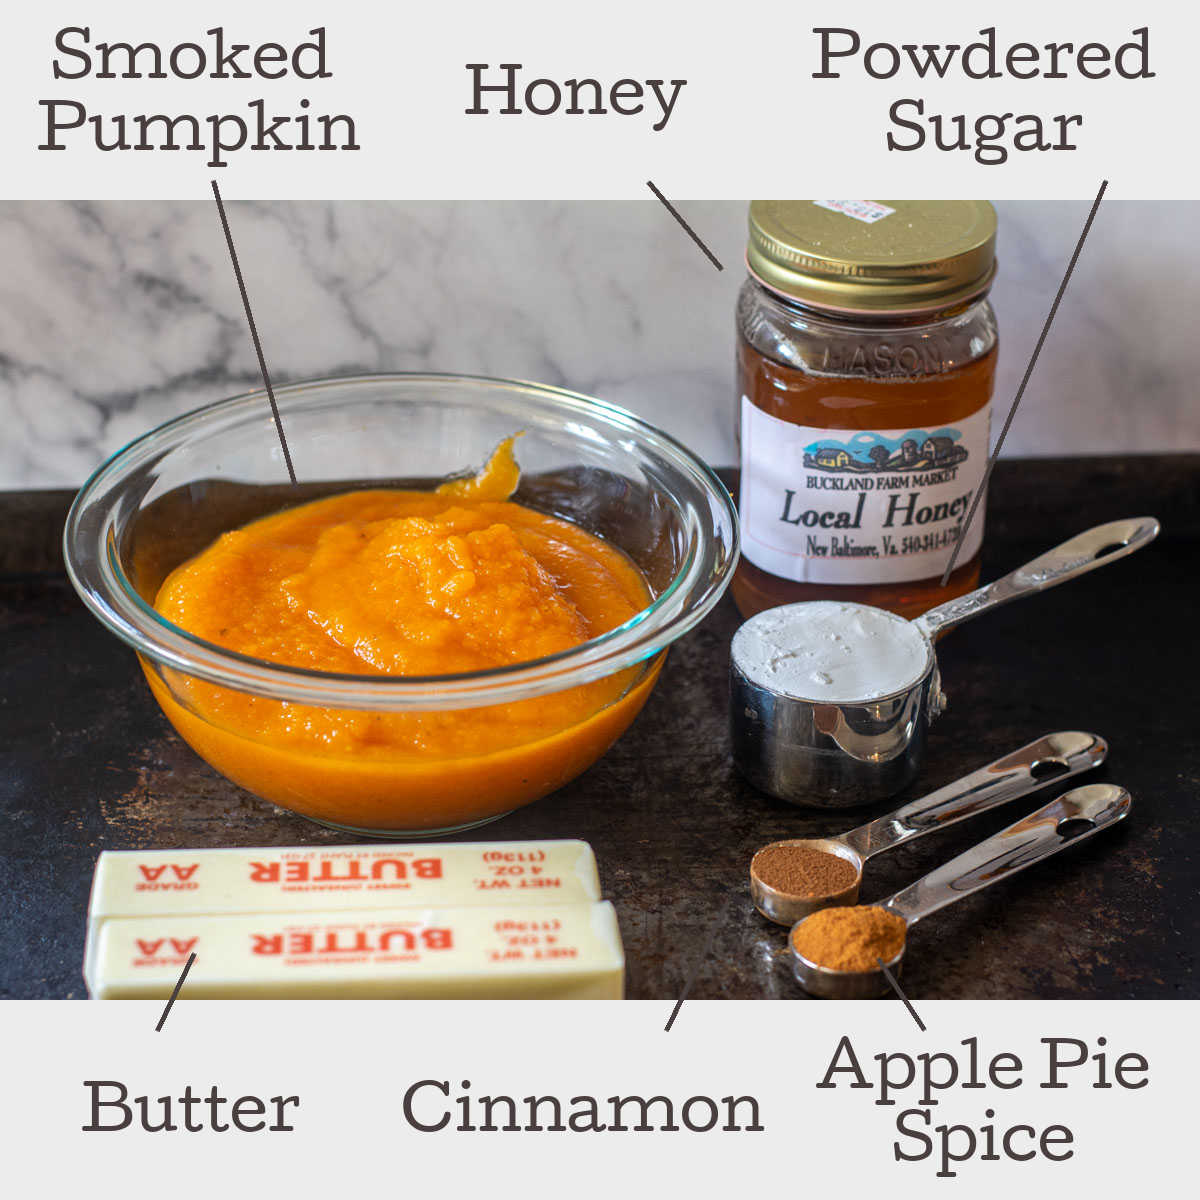 ingredients for smoked pumpkin butter laid out on a sheet pan with labels